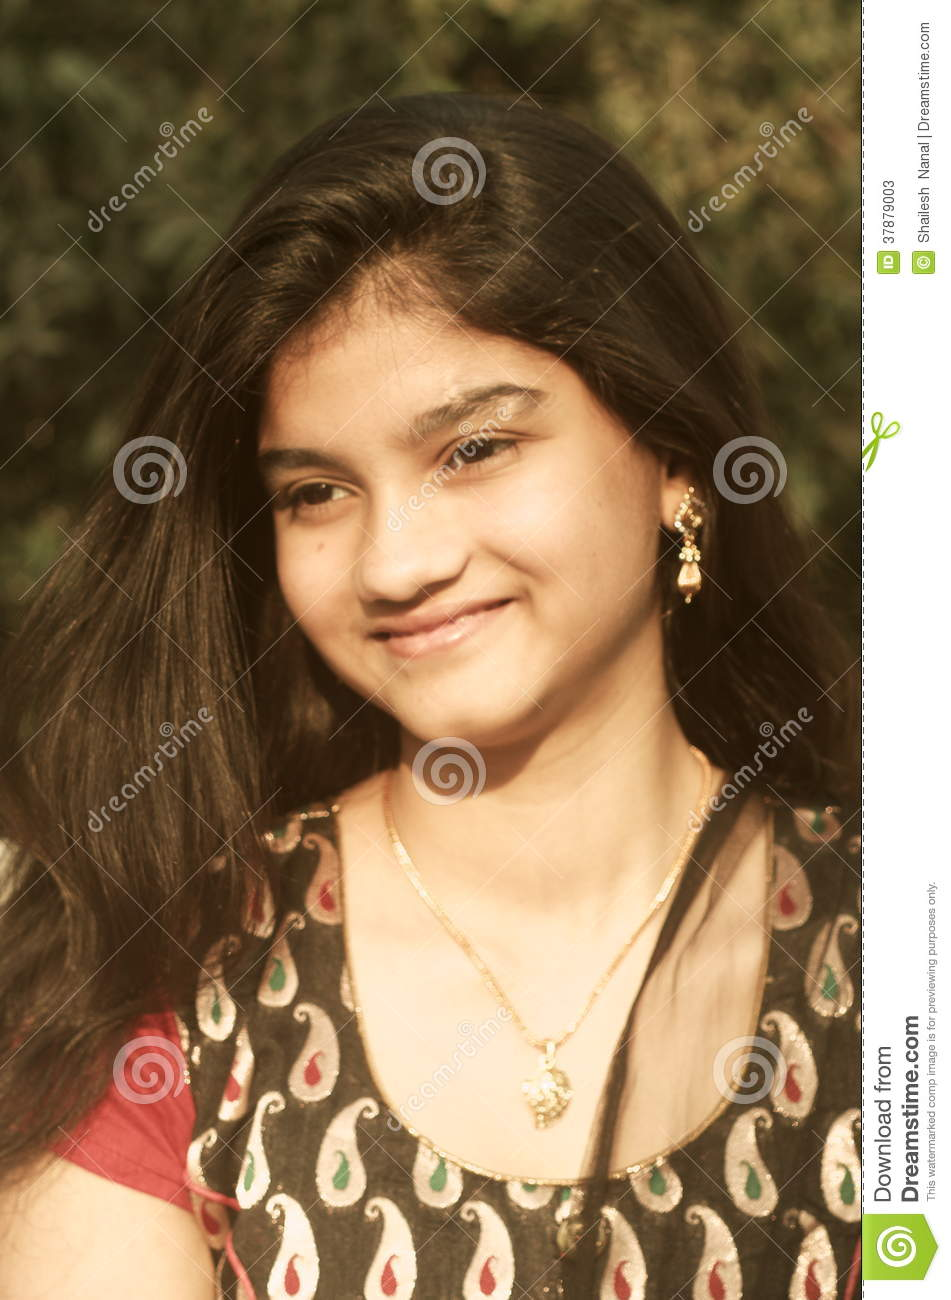 Sweet and beautiful face stock image. Image of memories - 37879003